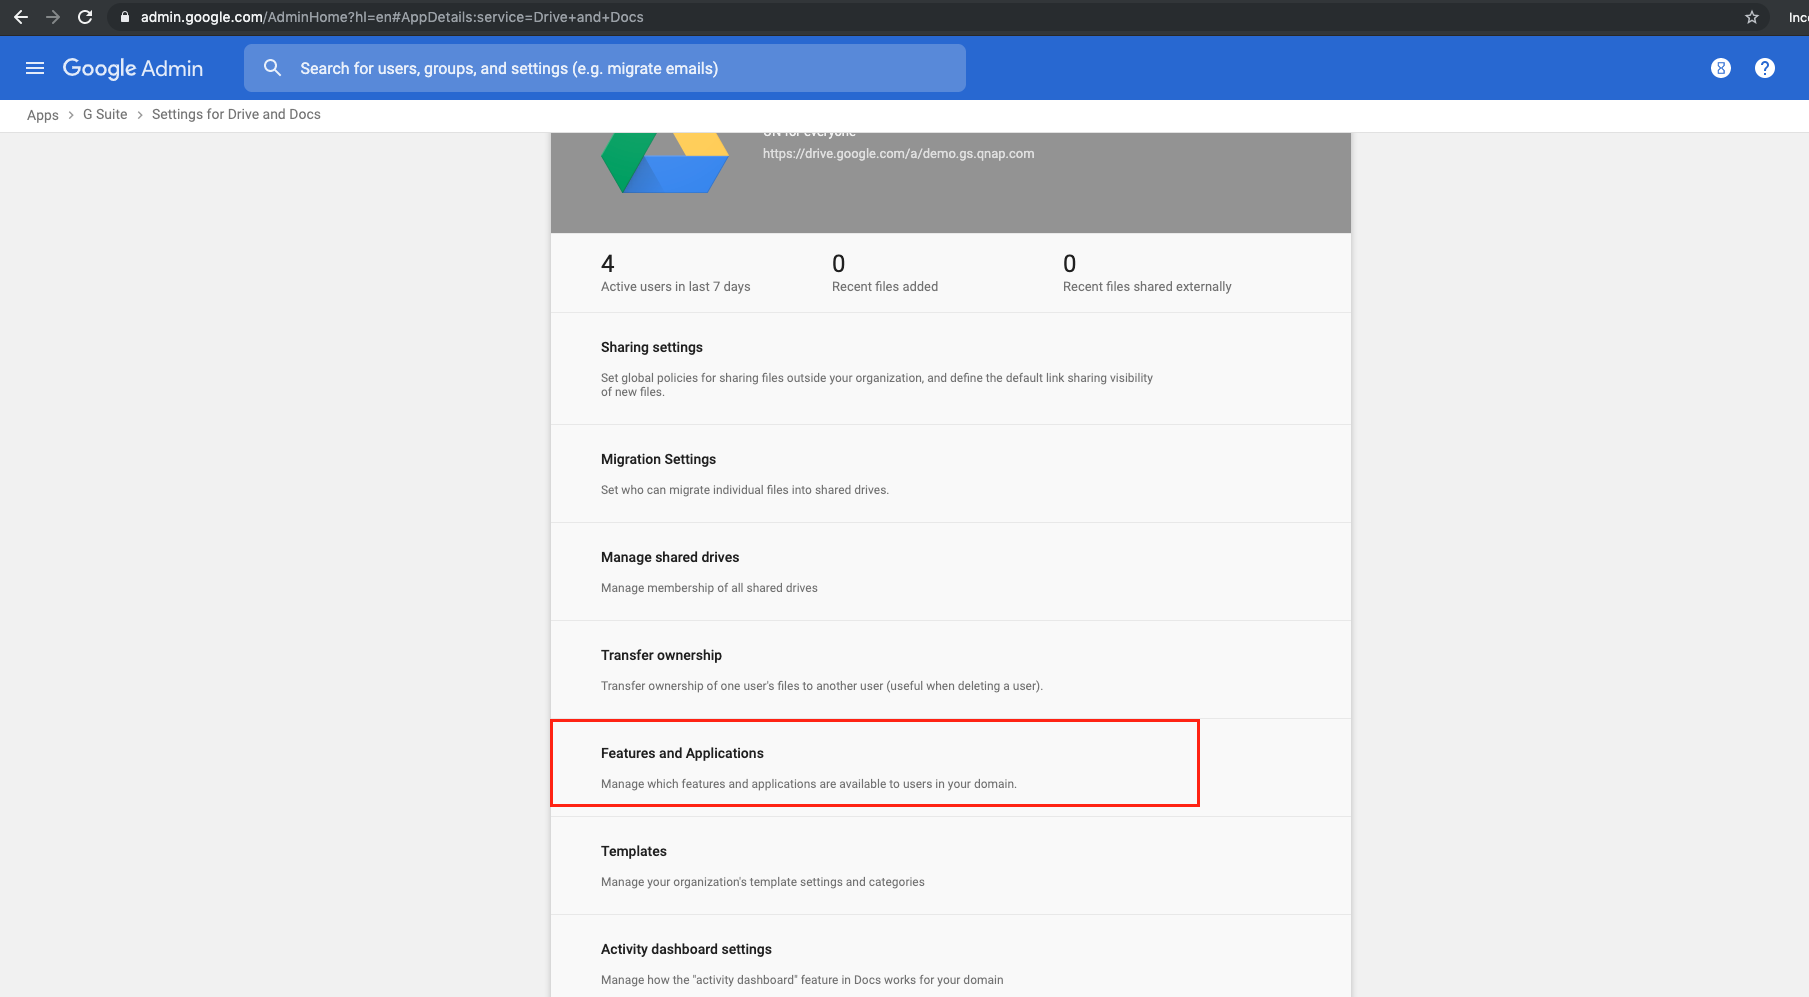 How to obtain authorization from Google for using Boxafe for